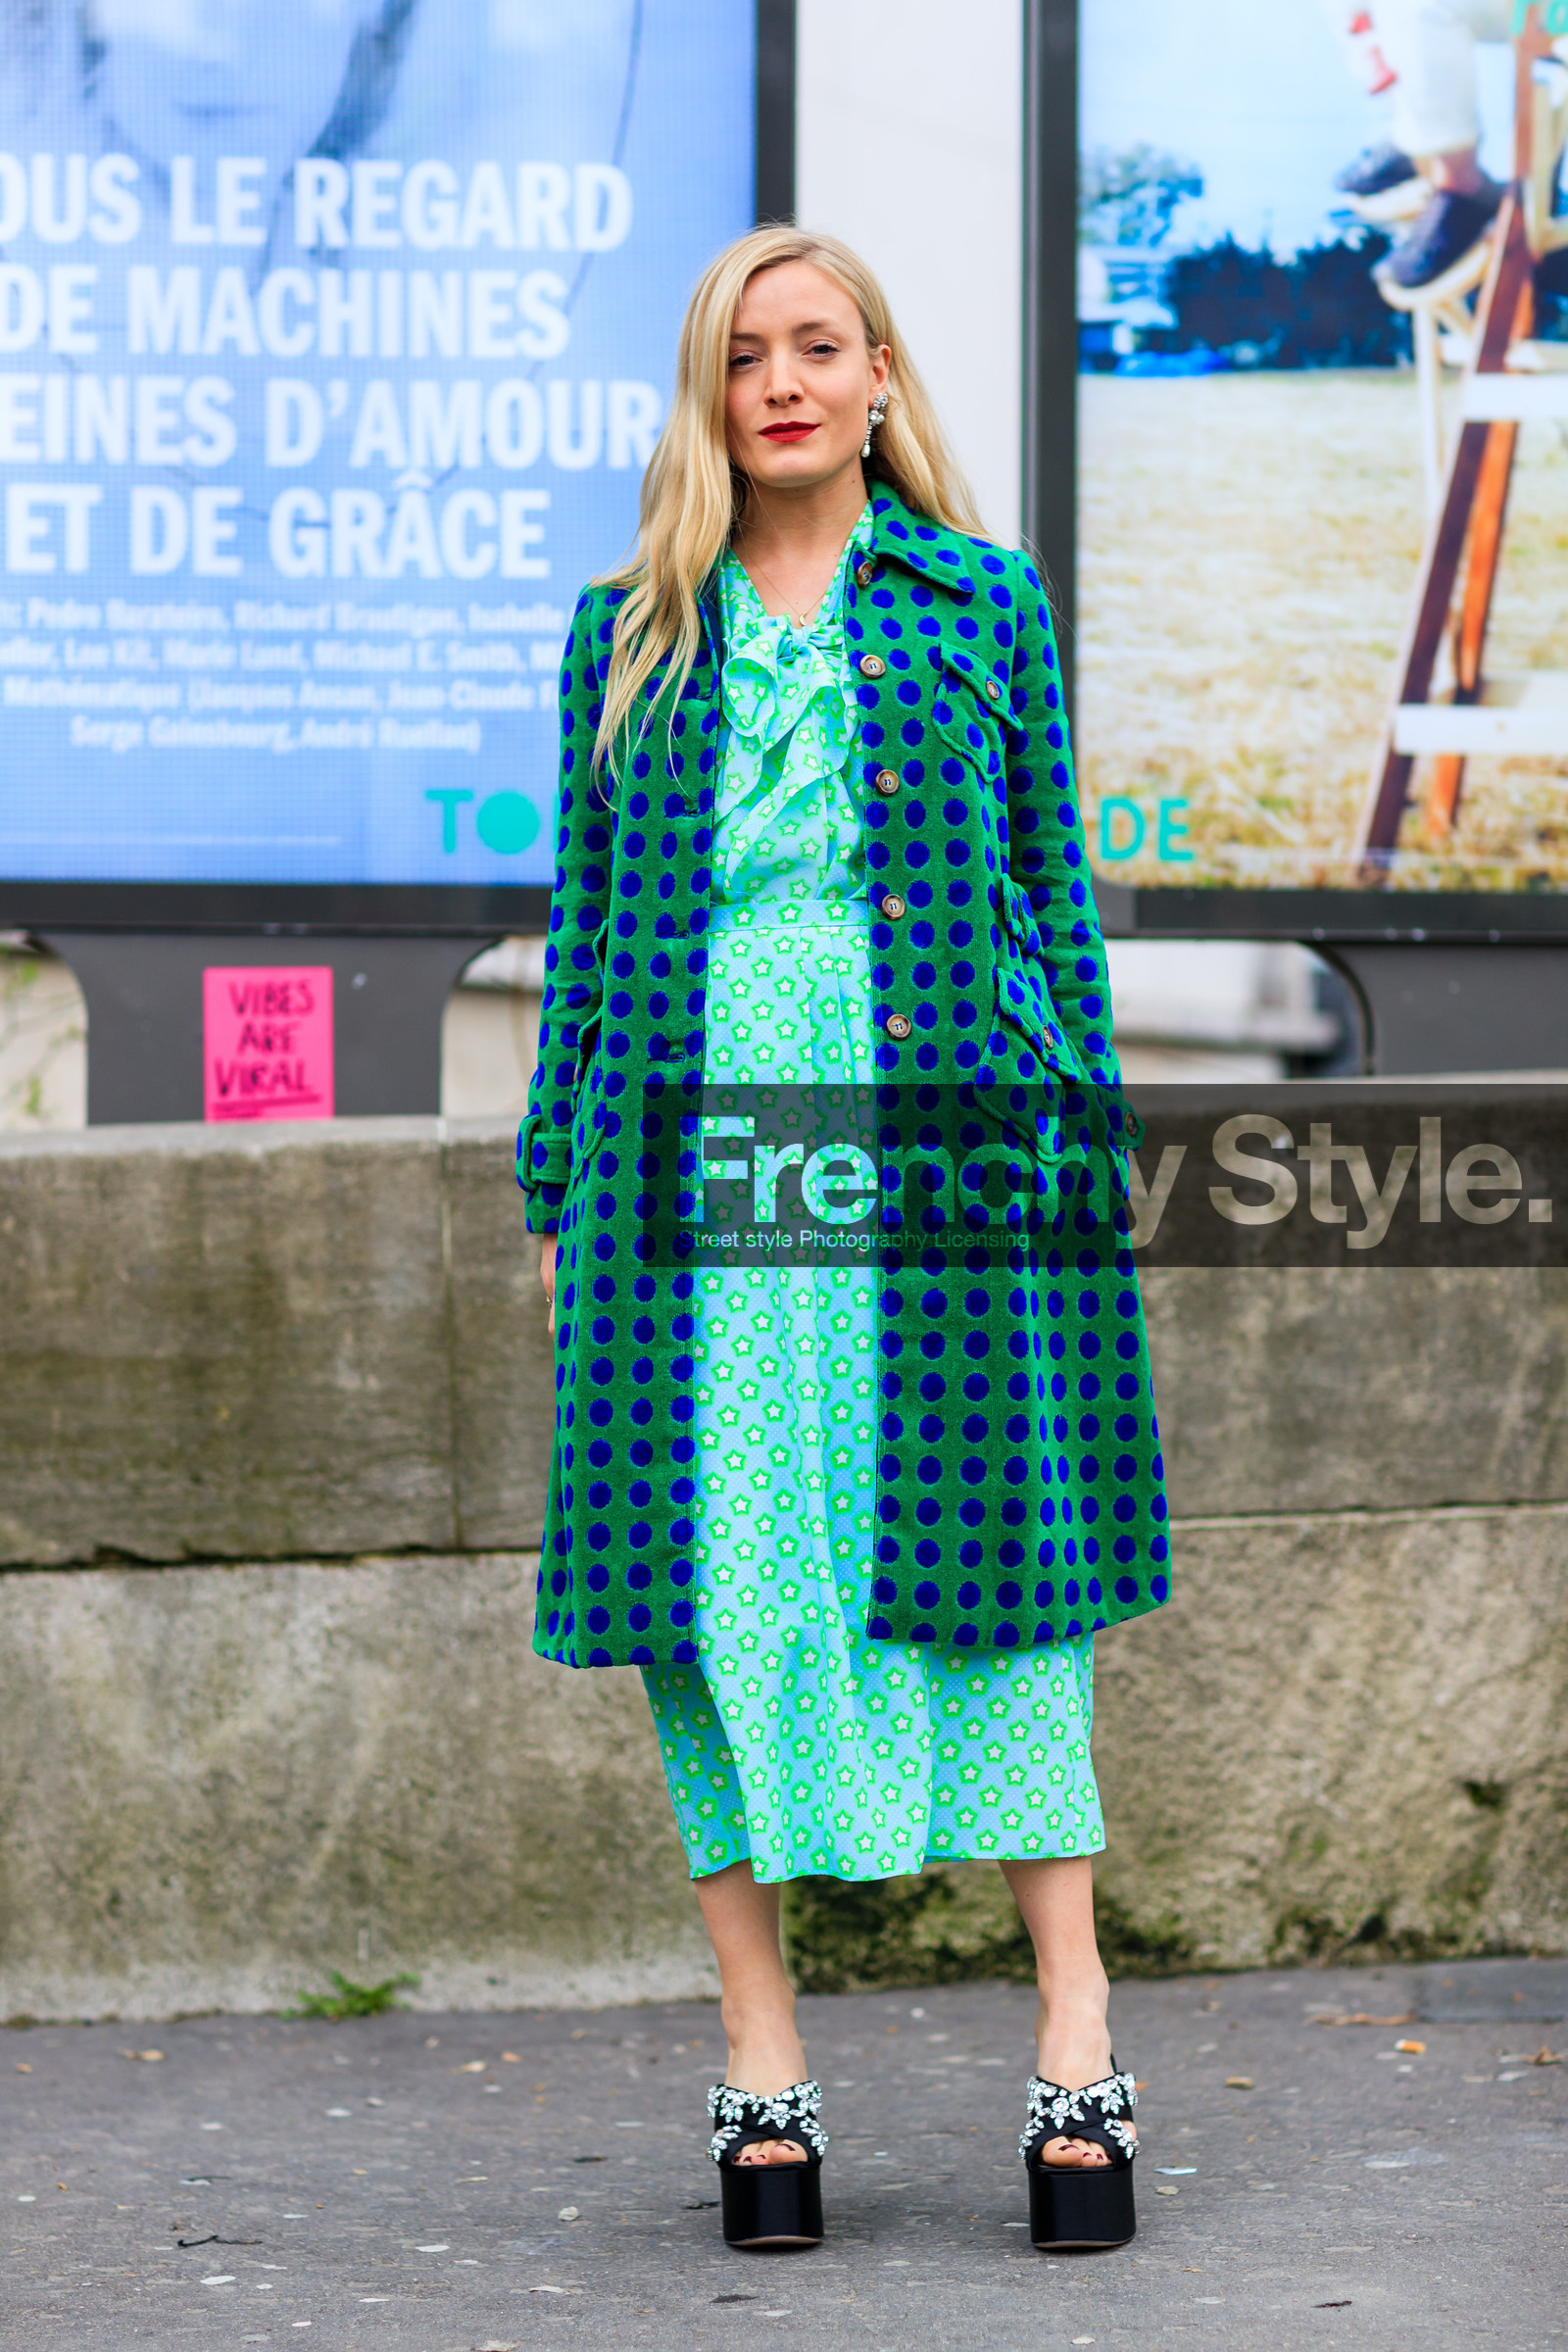 90fe5a2f7d447 1702P1554.jpg   Frenchy Style   Street Style by Jonathan Paciullo